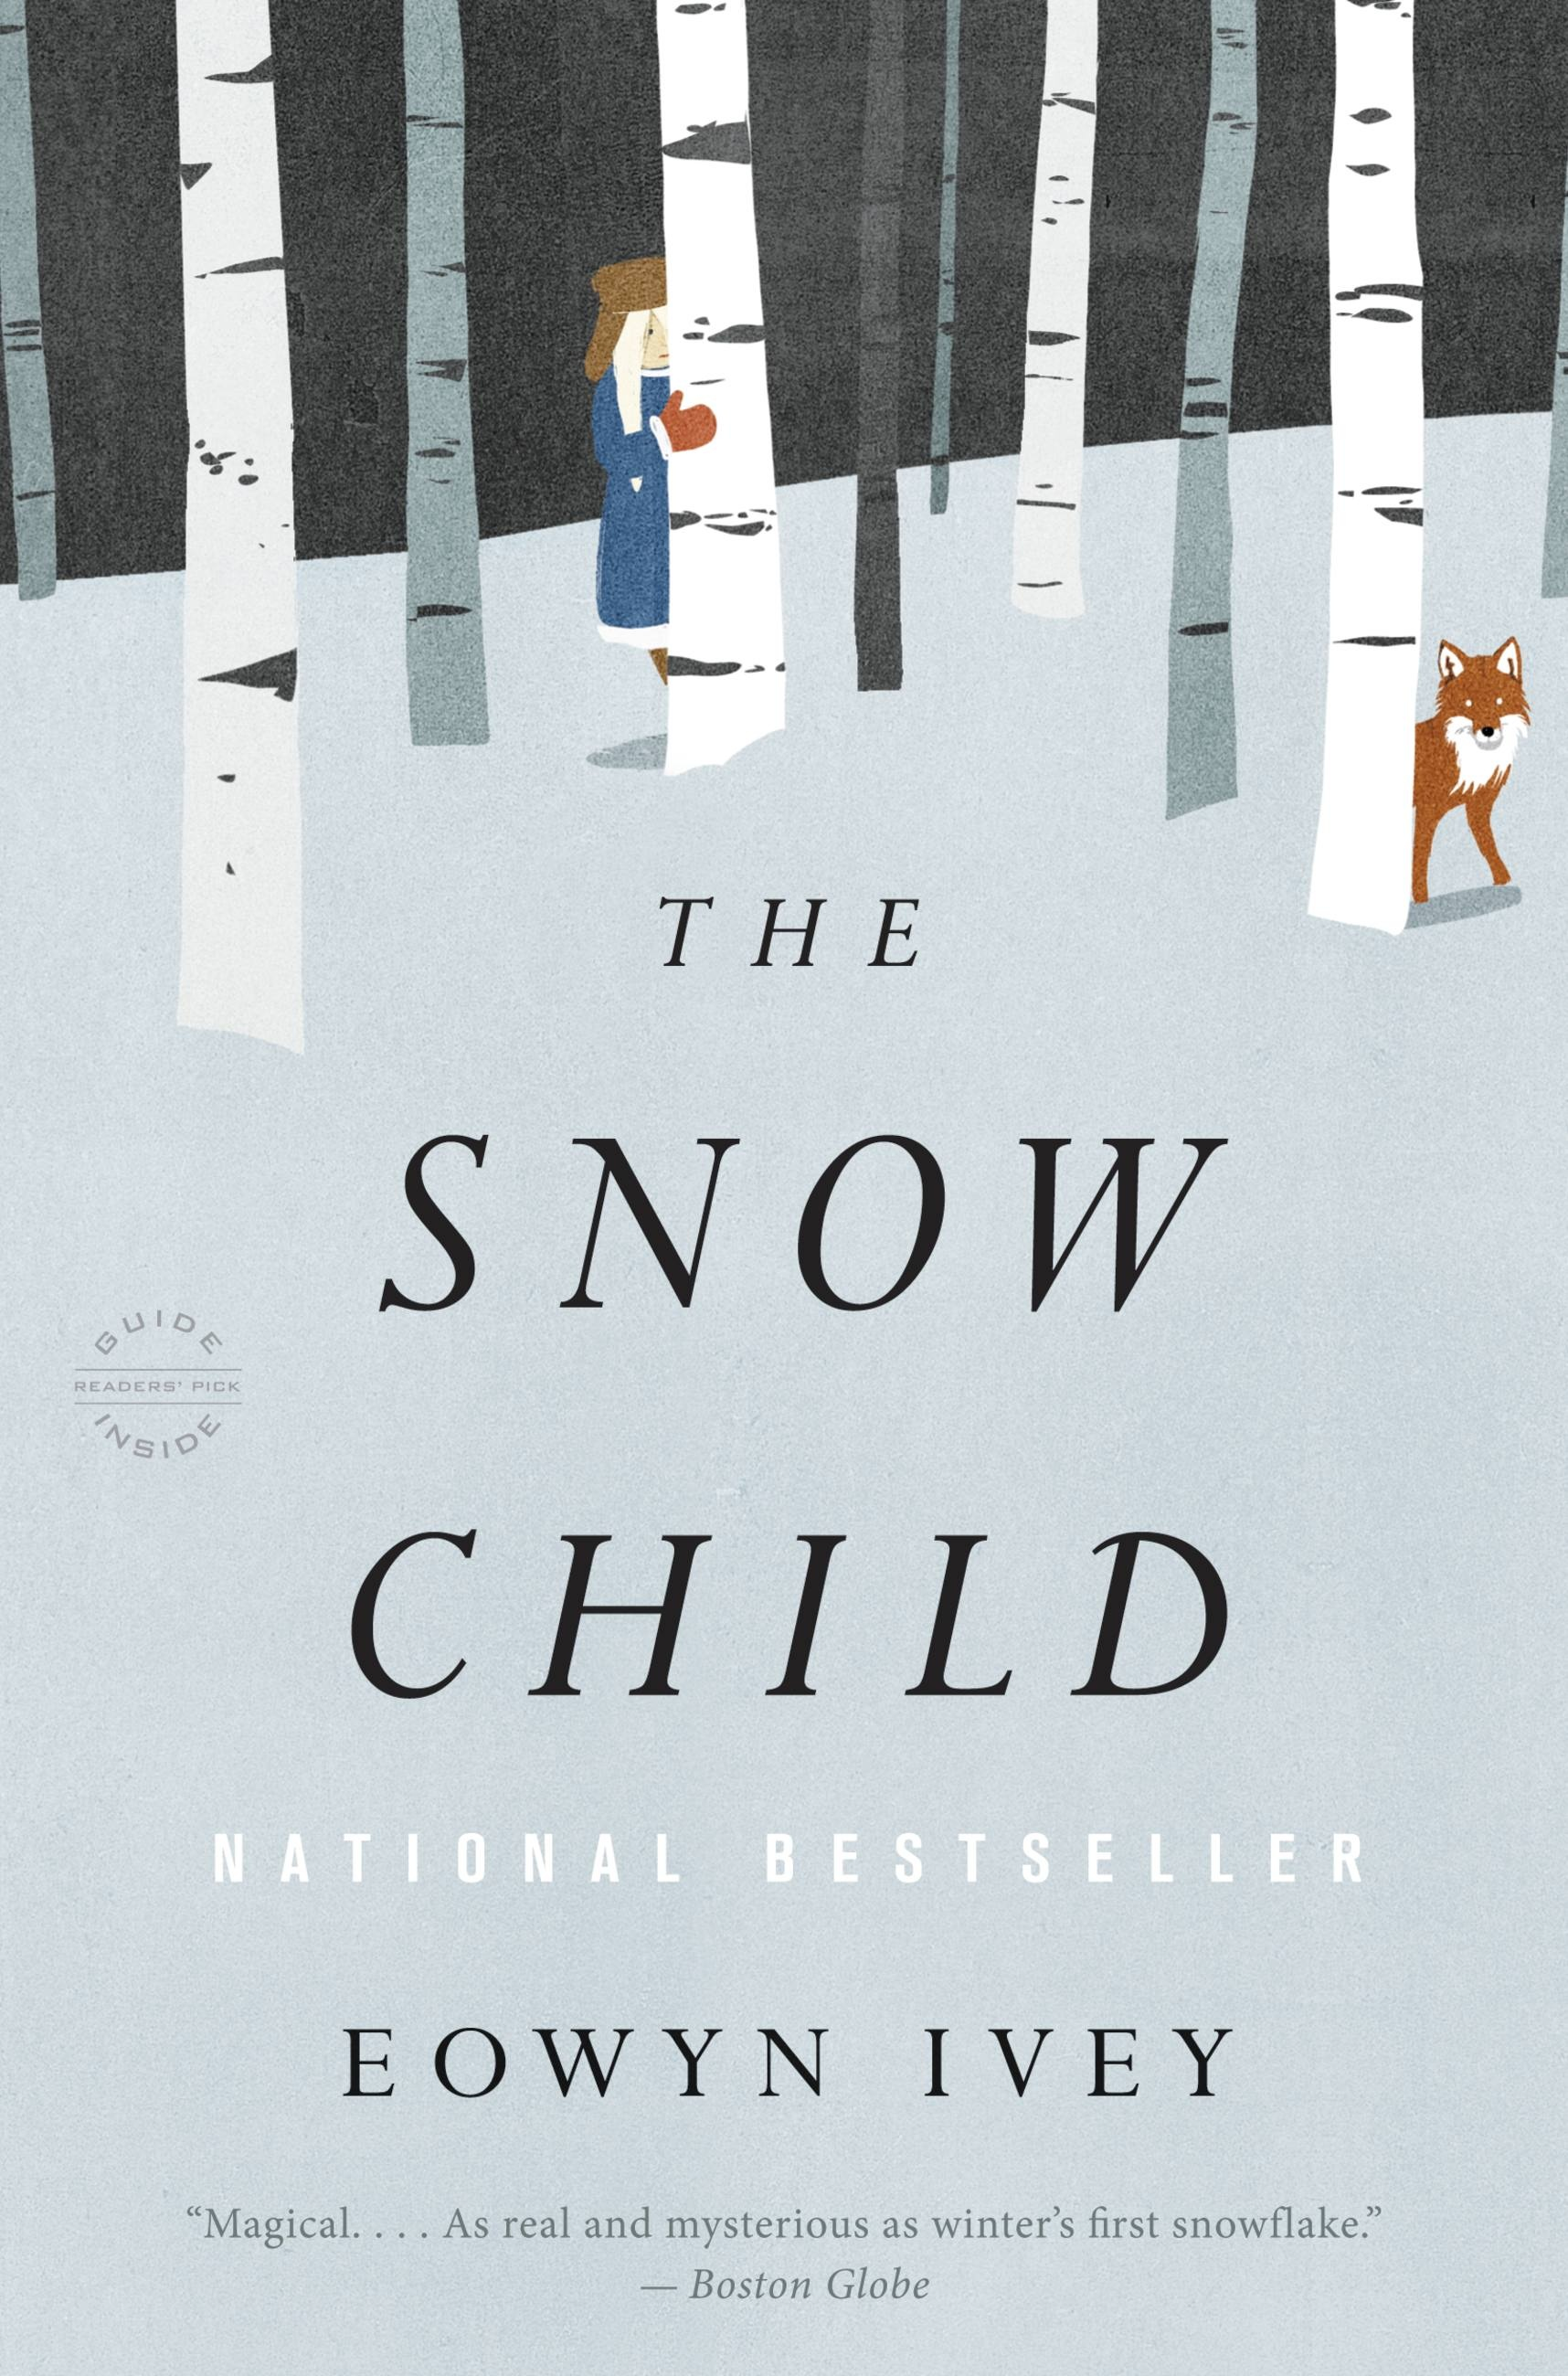 The Snow Child by Eowyn Ivey | Hachette Book Group